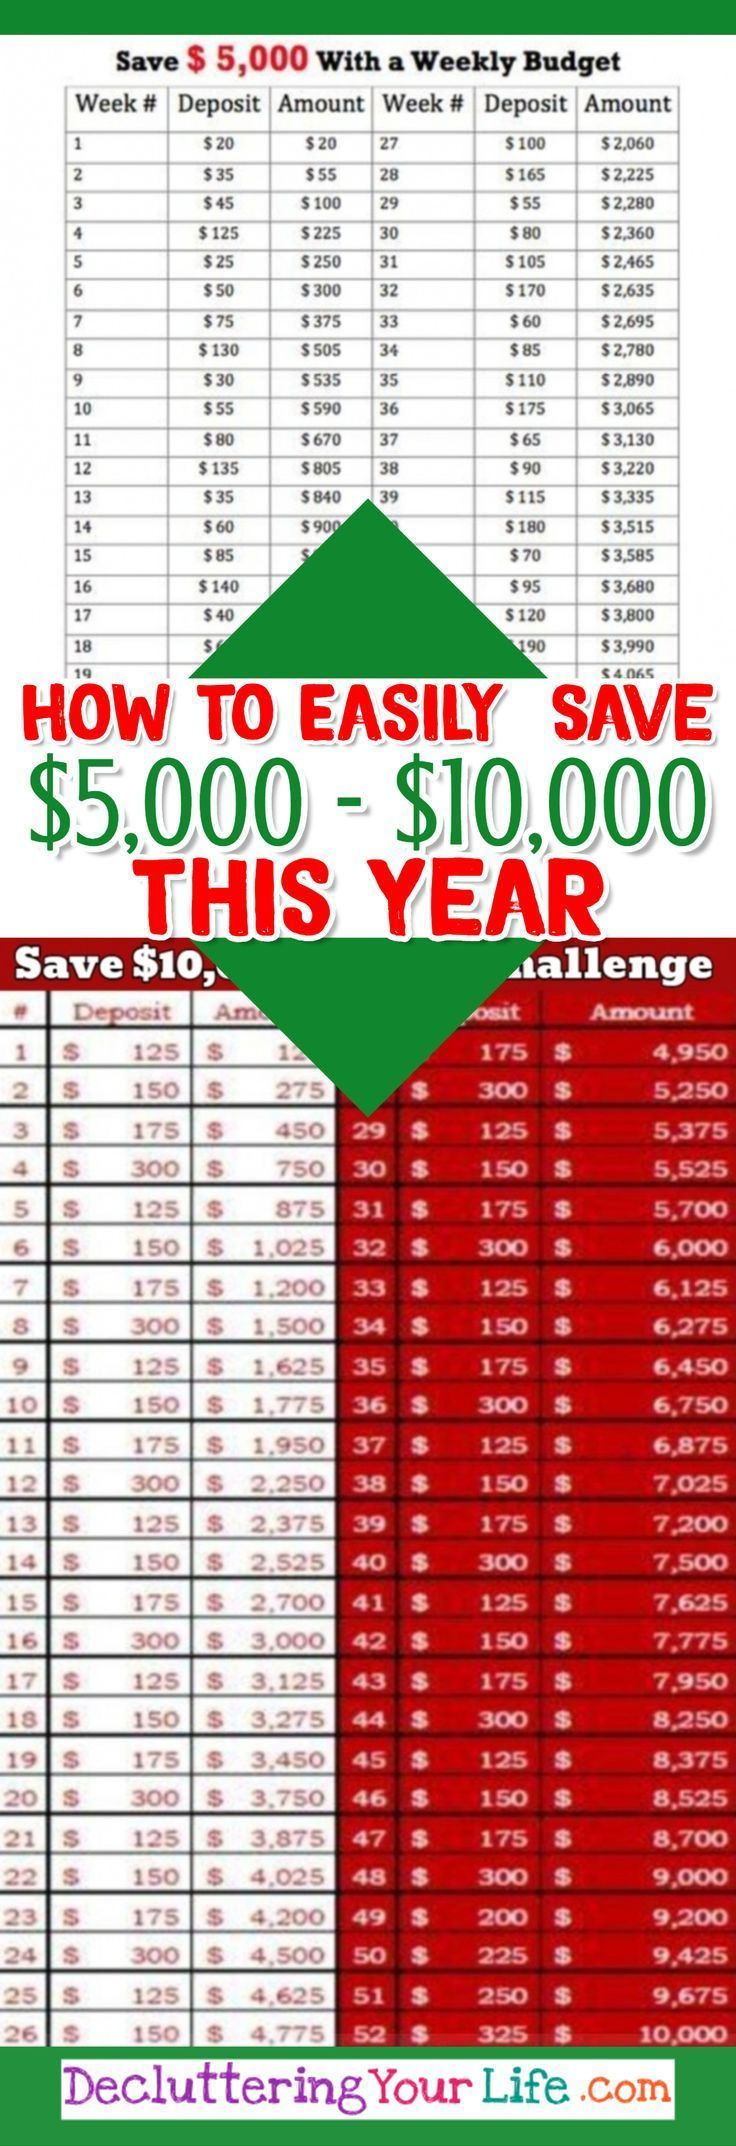 How To Save $5,000 - $10,000 this Year - #MoneyChallenge ideas and savings chart...